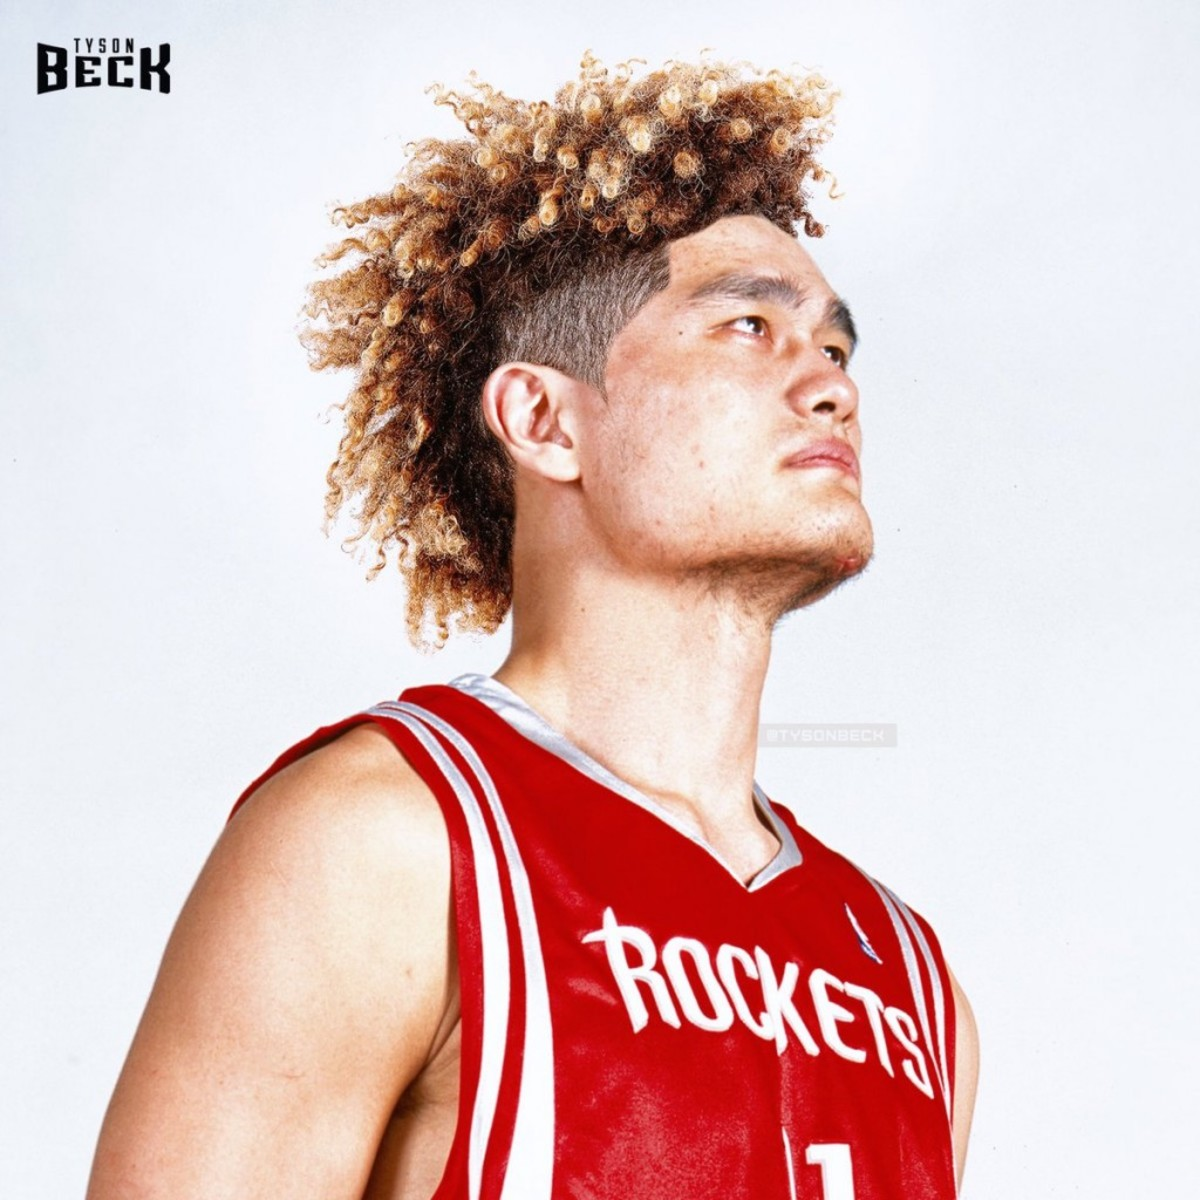 Tyson Beck NBA Edition Old Faces Fresh Cuts